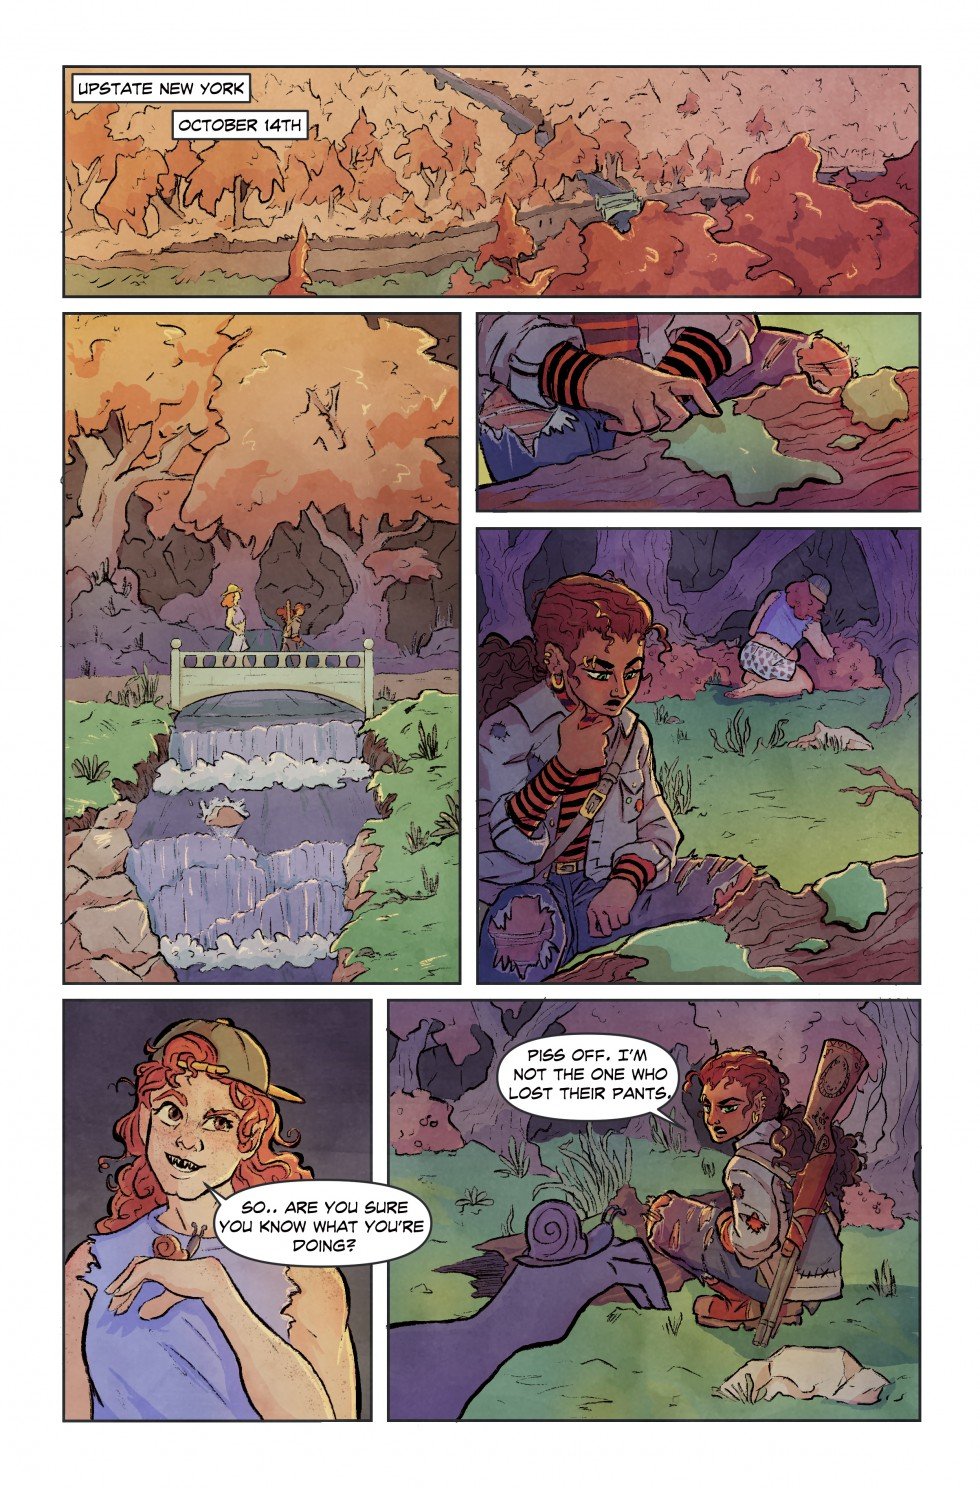 A comic page depicting two girls as they search a forest for a pair of pants